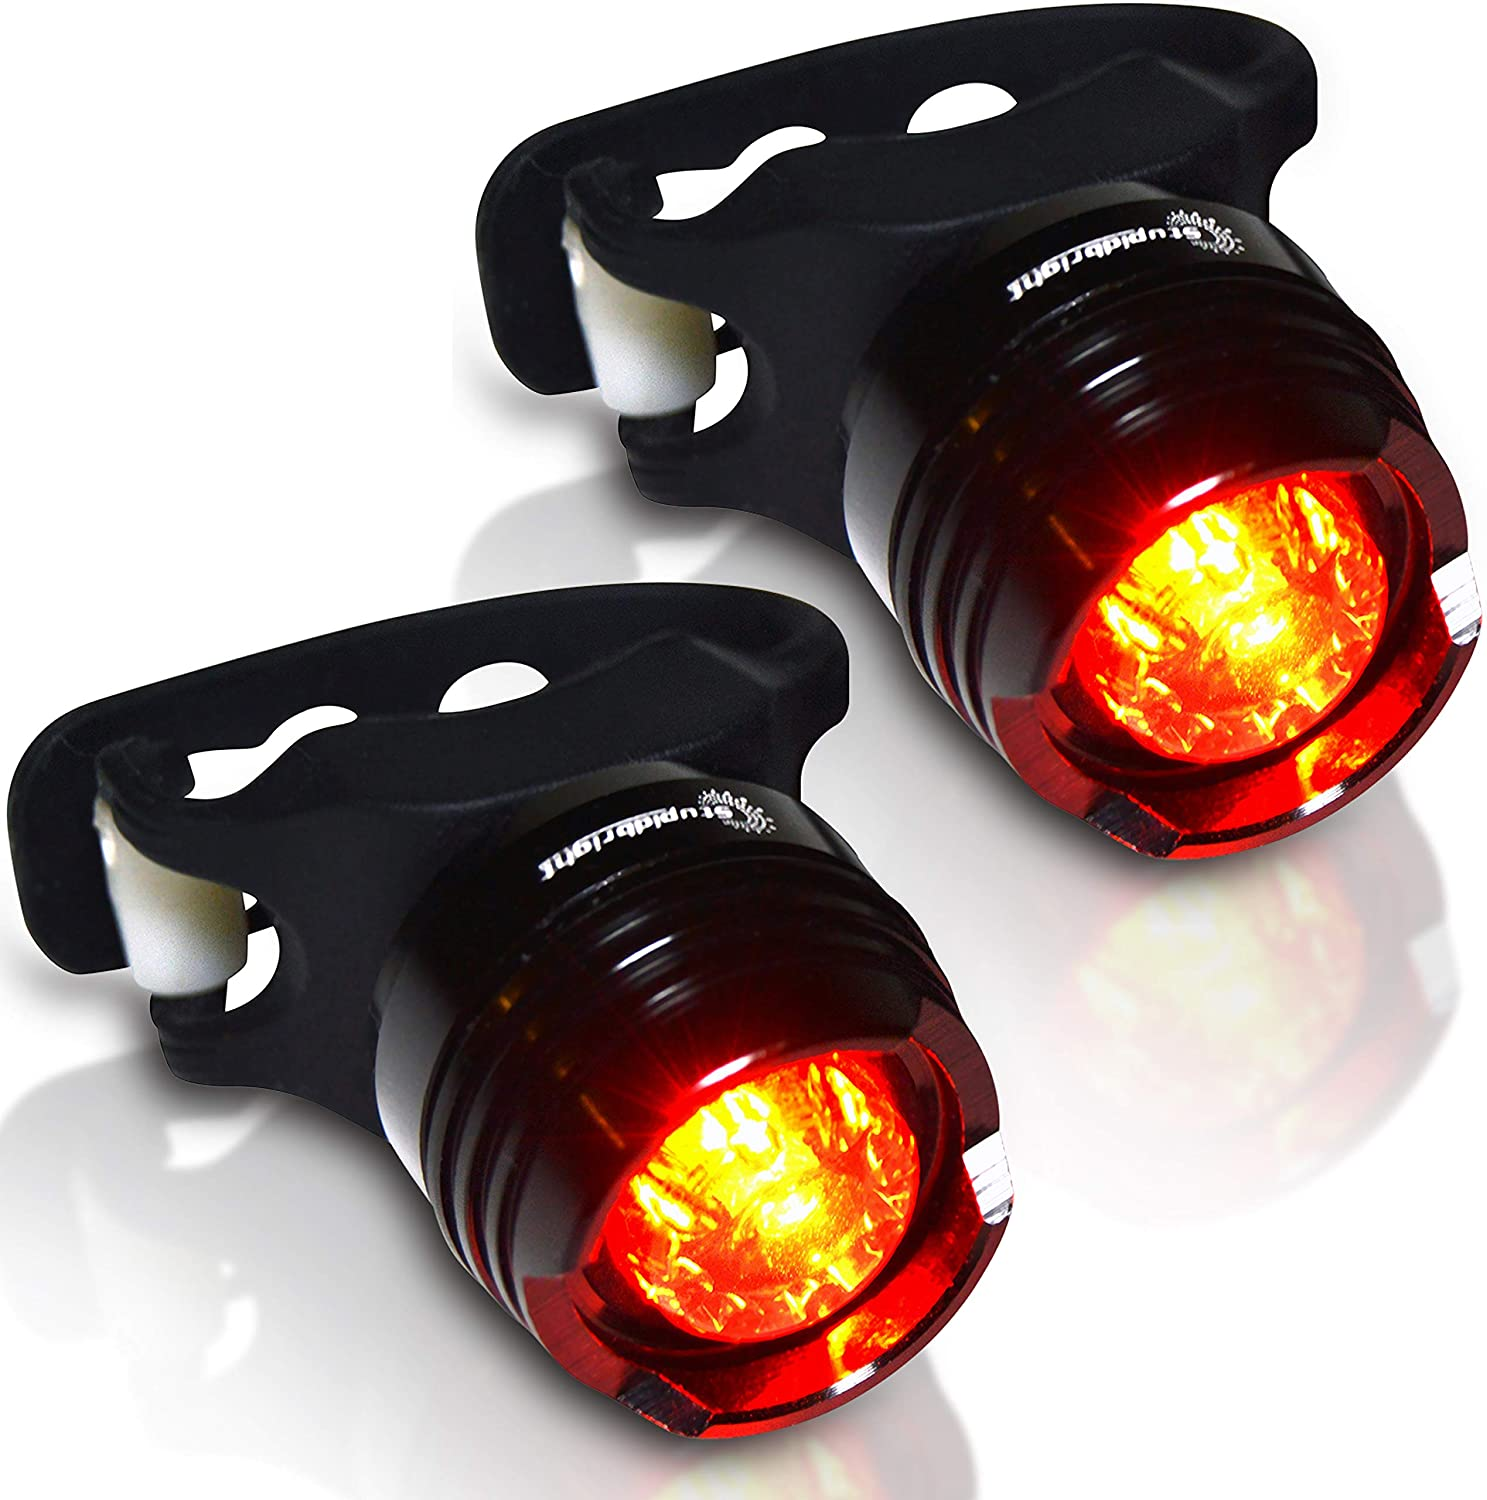 Stupidbright Tail Light Strap-On LED Micro Bicycle Lights}